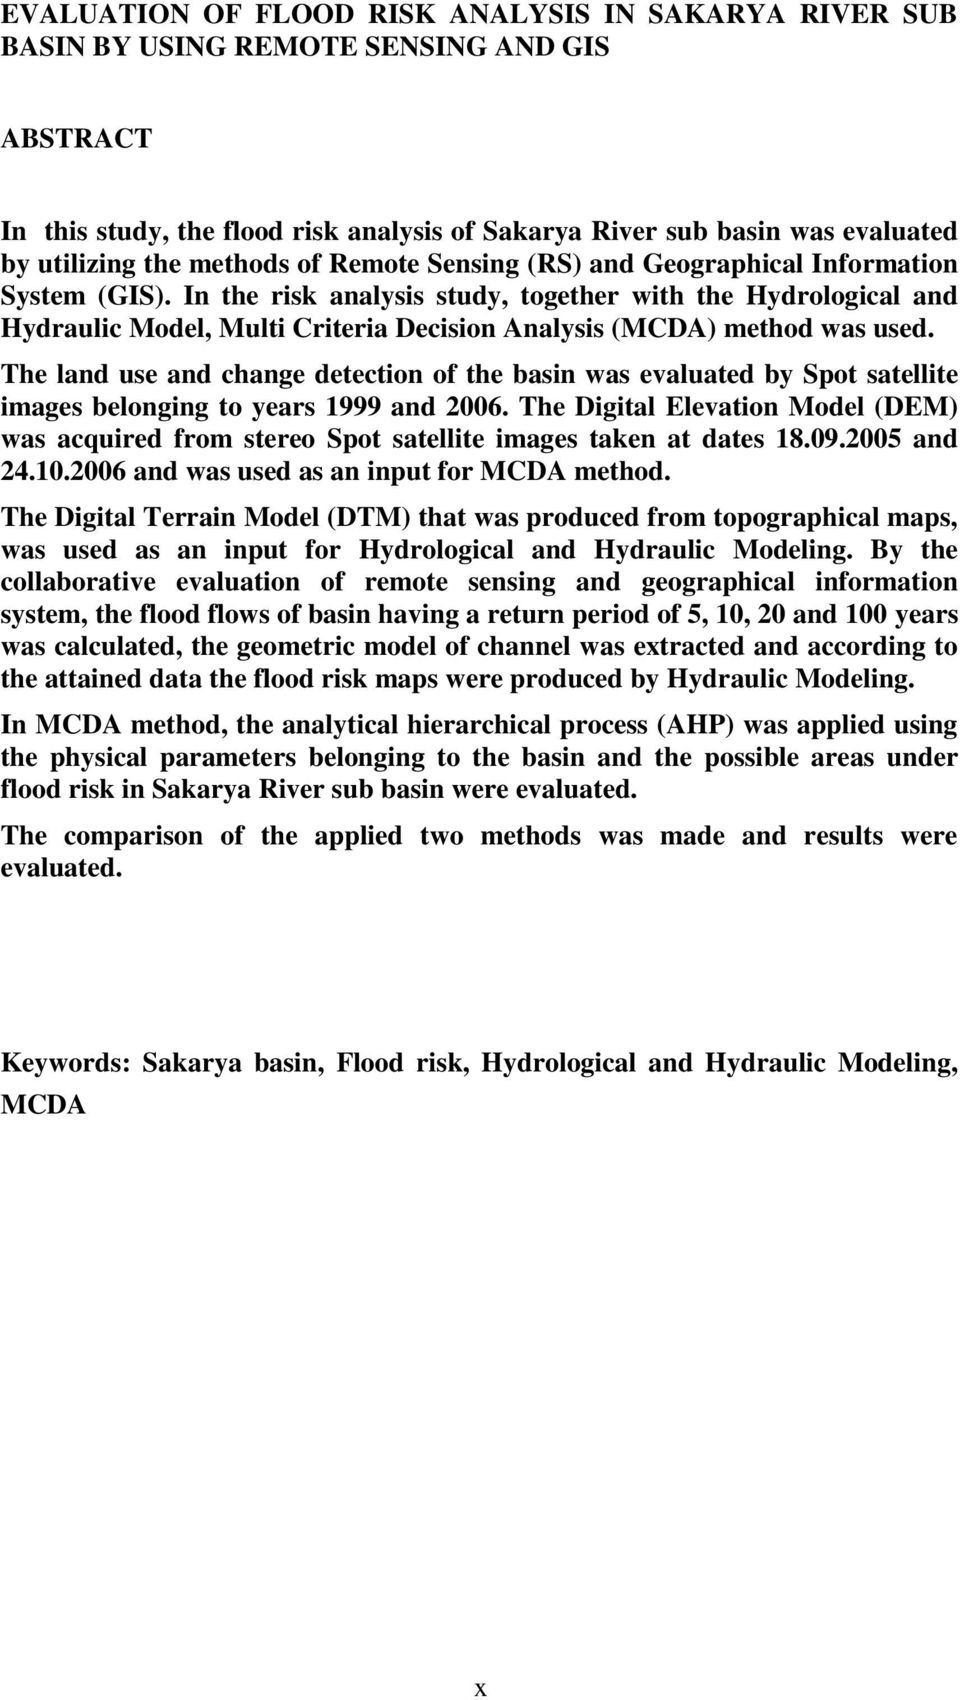 In the risk analysis study, together with the Hydrological and Hydraulic Model, Multi Criteria Decision Analysis (MCDA) method was used.